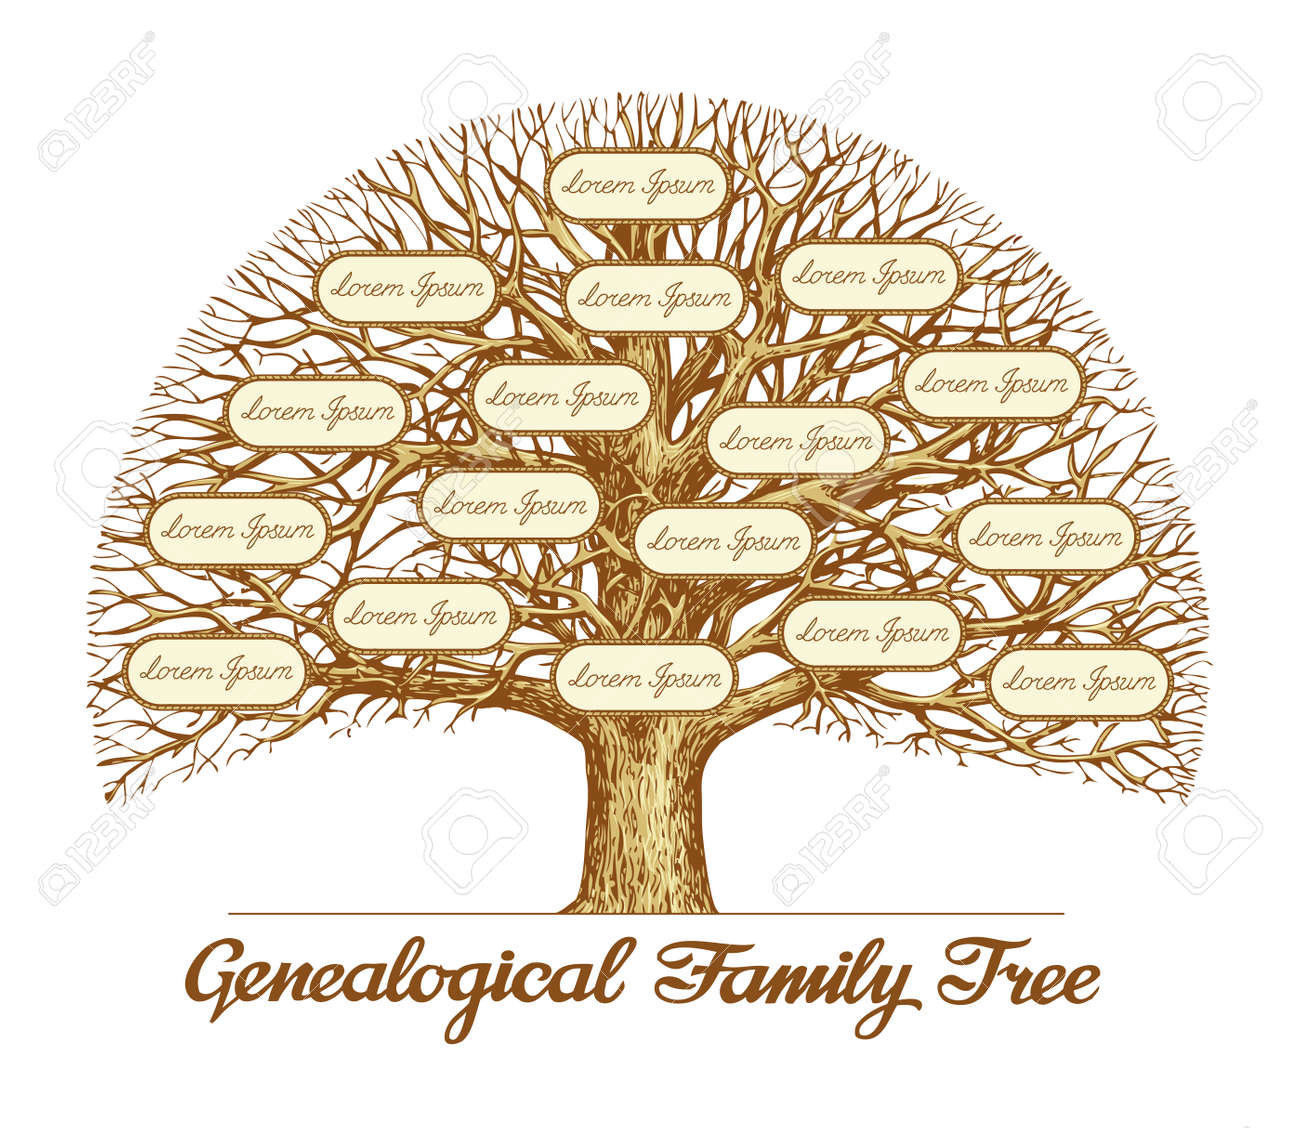 images of a family tree